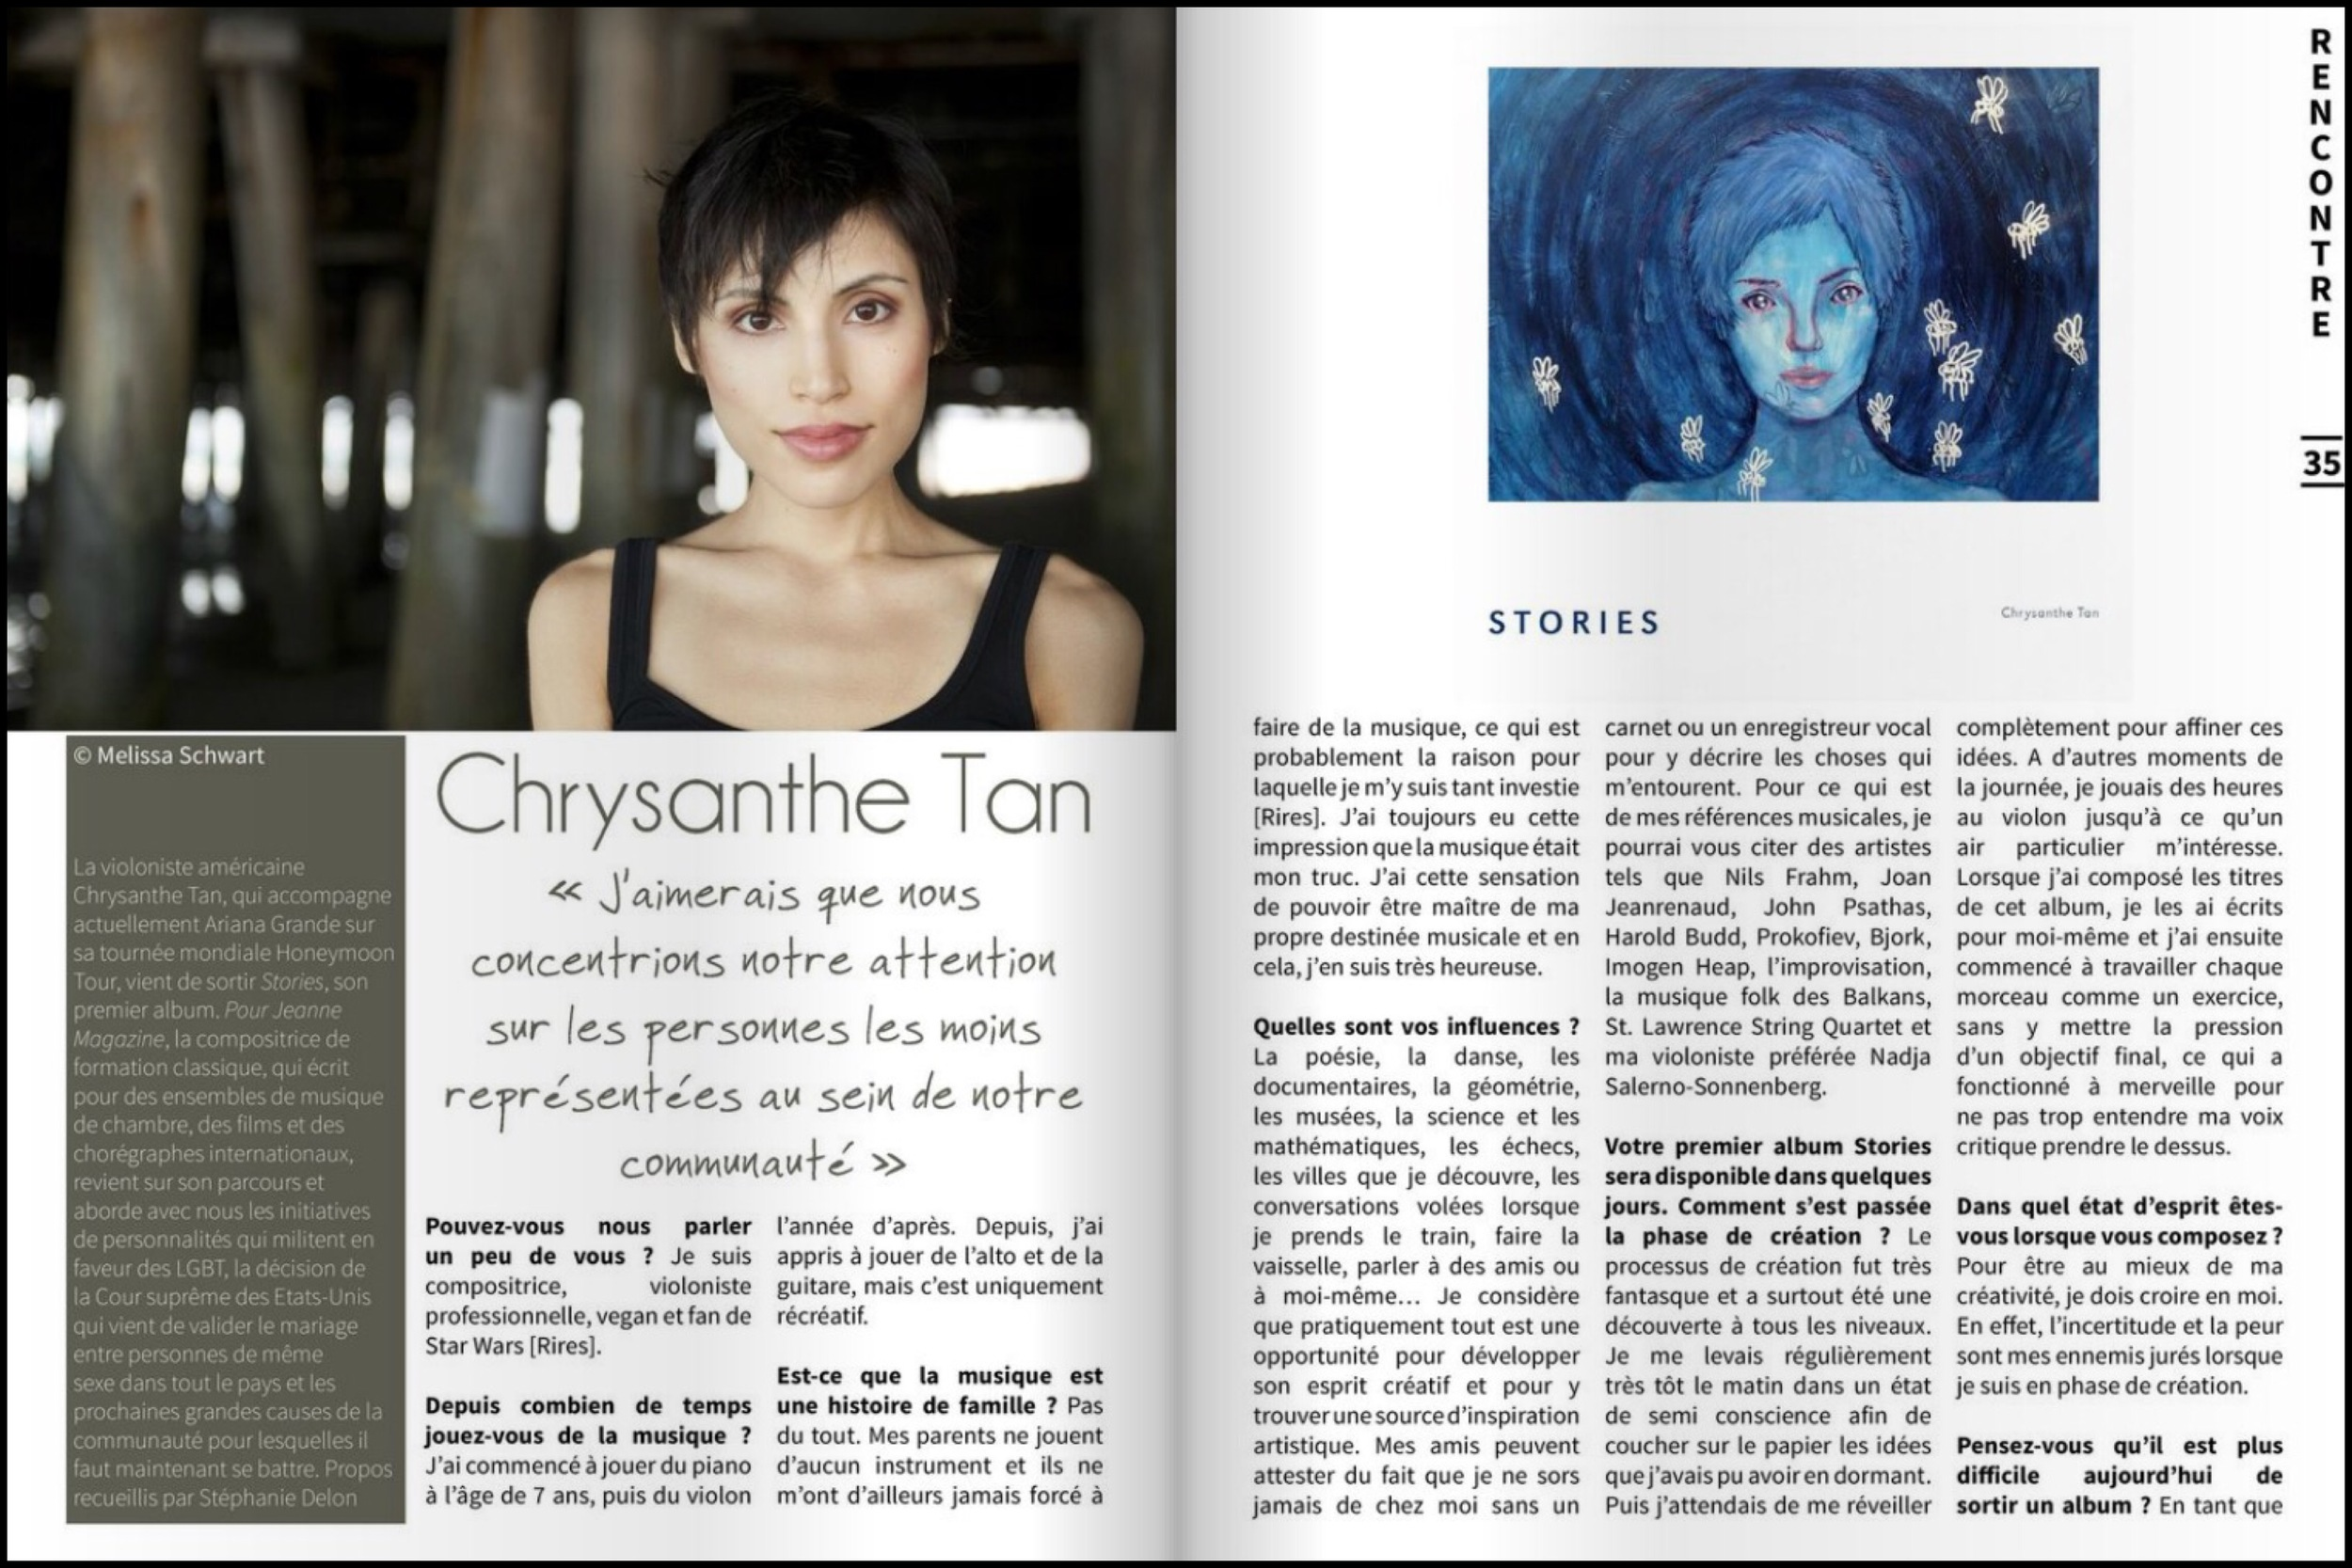 Preview of 4-page Jeanne Magazine interview